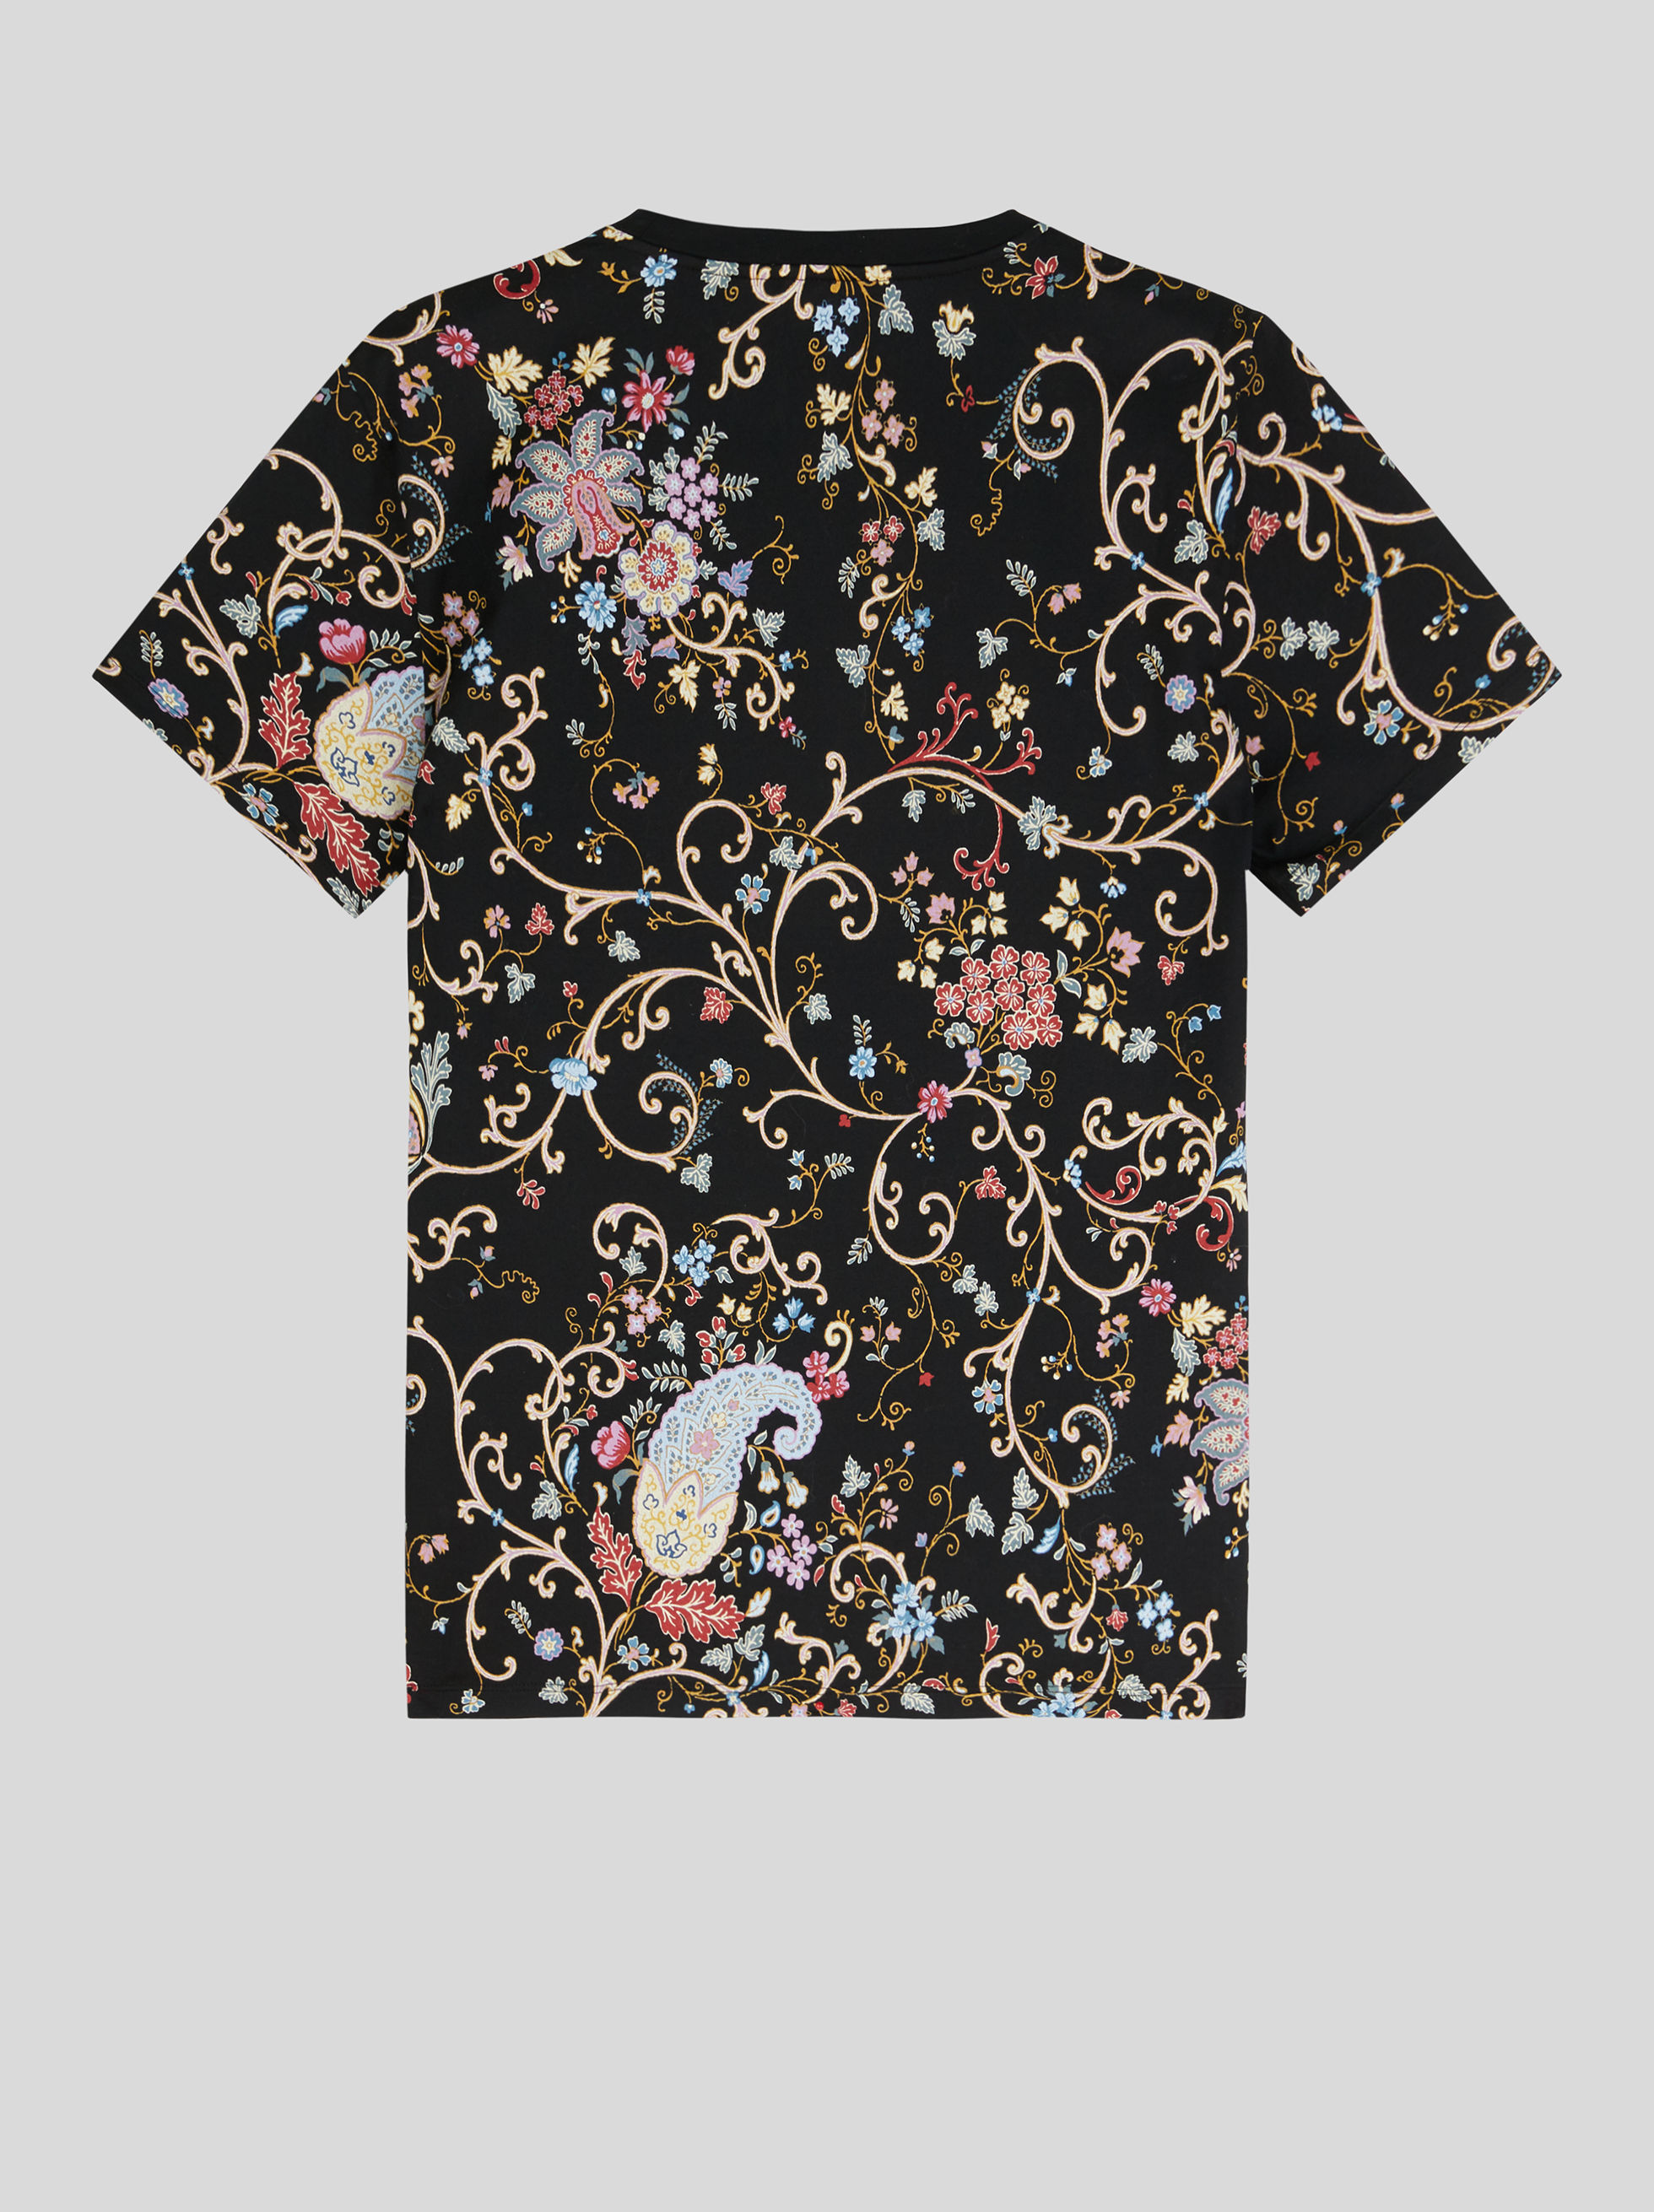 T-SHIRT WITH LEAFY PAISLEY PRINT